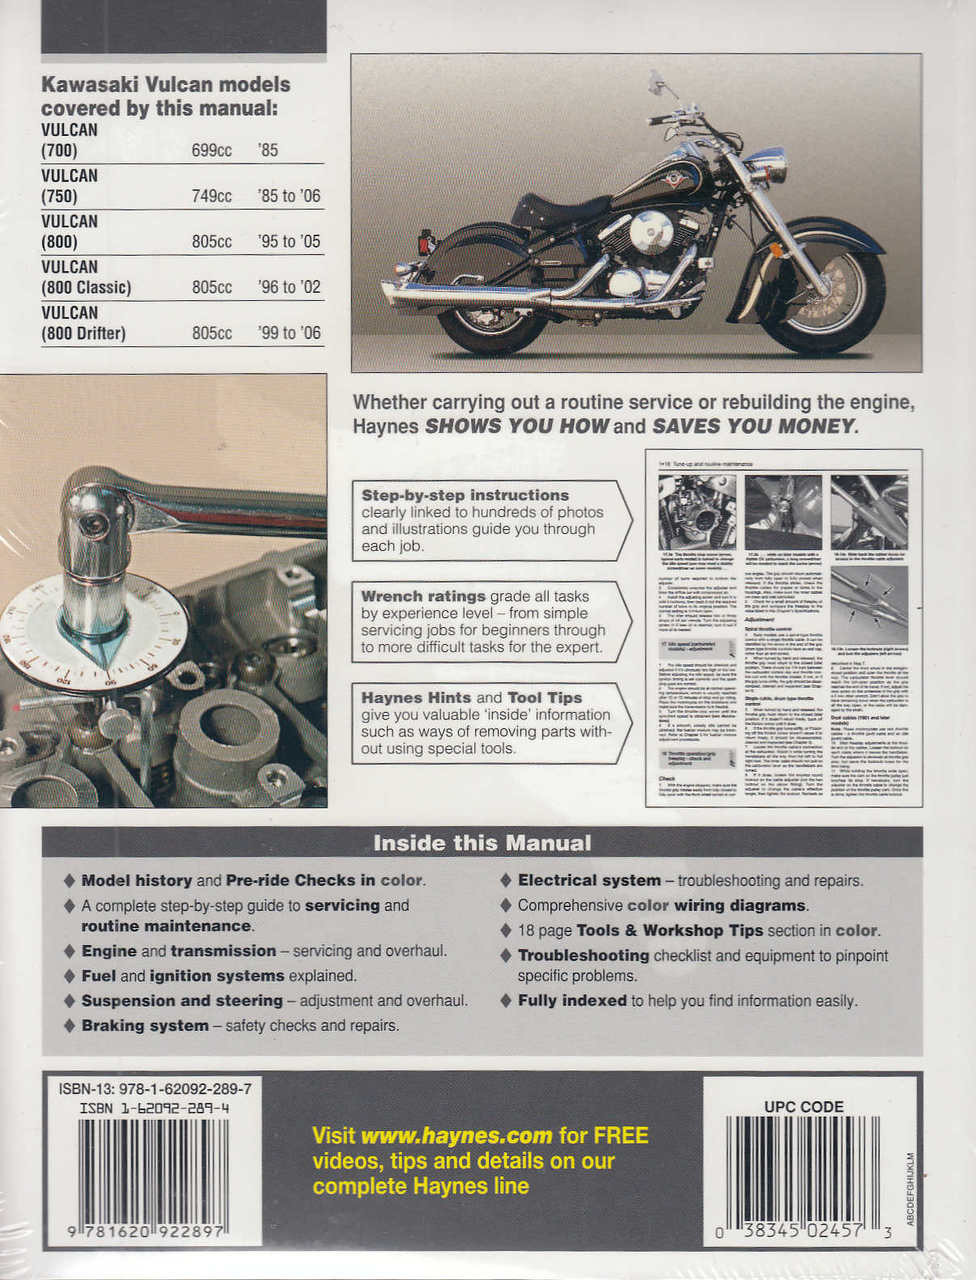 Kawasaki Vulcan 700 750 And 800 1985 2006 Workshop Manual Kz900 Wiring Diagram 9781620922897